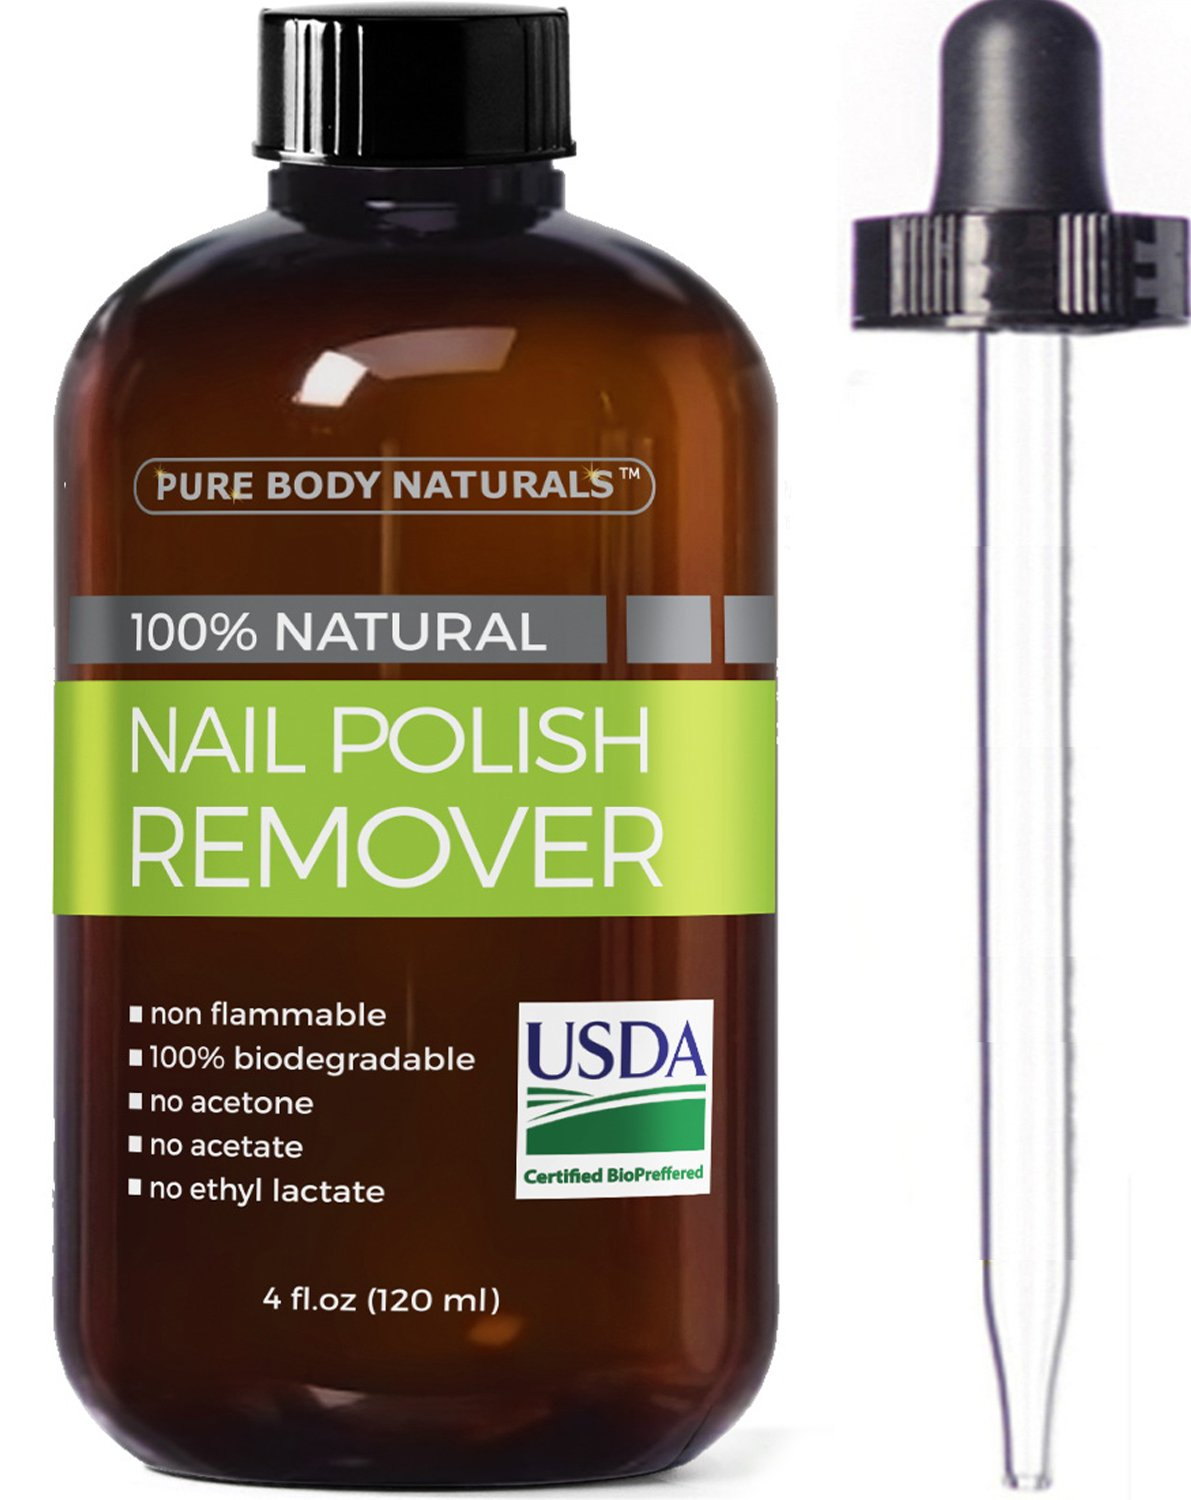 Nail Polish Remover 100% Natural - USDA Bio-certified Non-Toxic, Acetone-Free Nail Polish Remover, Effective UV Gel Nail Polish Remover Won